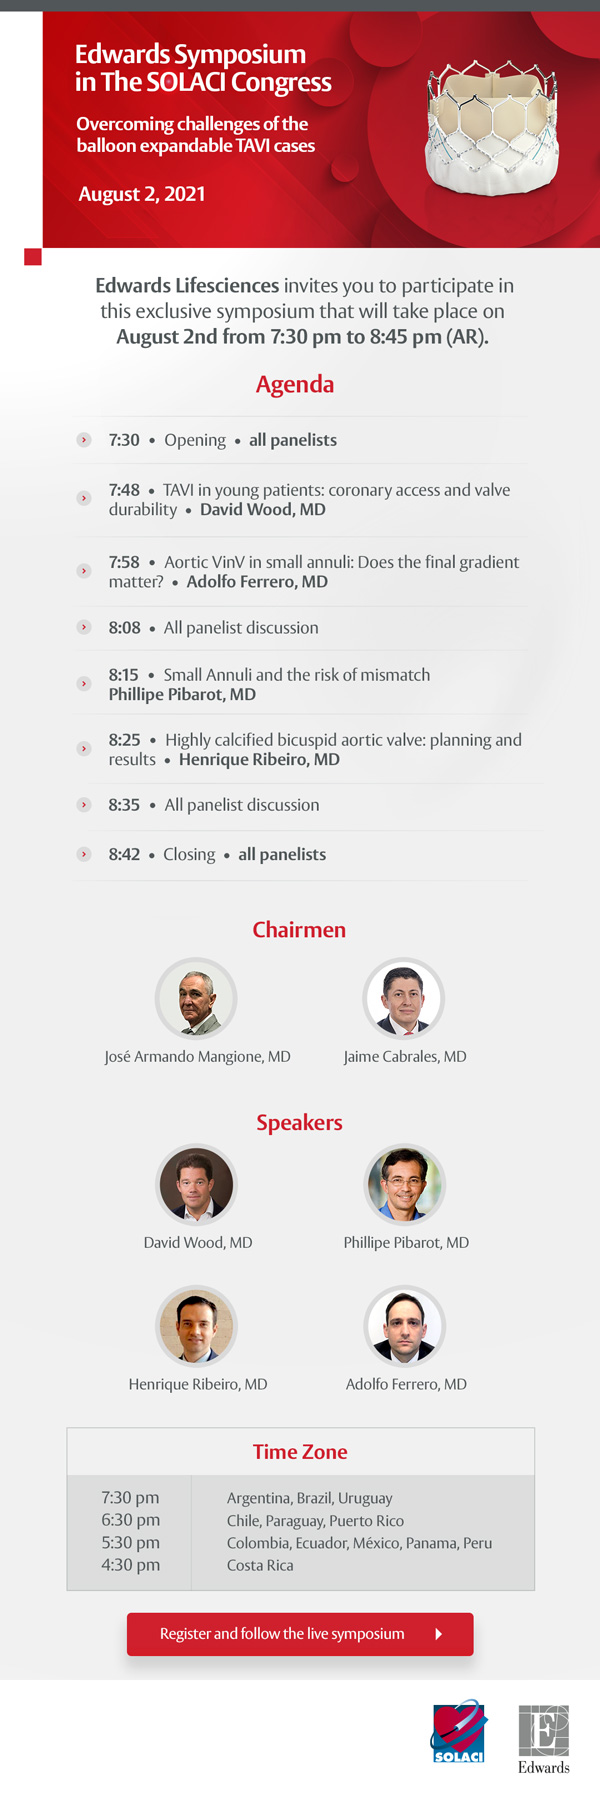 Edwards Symposium - Overcoming Challenges of the balloon expandable TAVI Cases